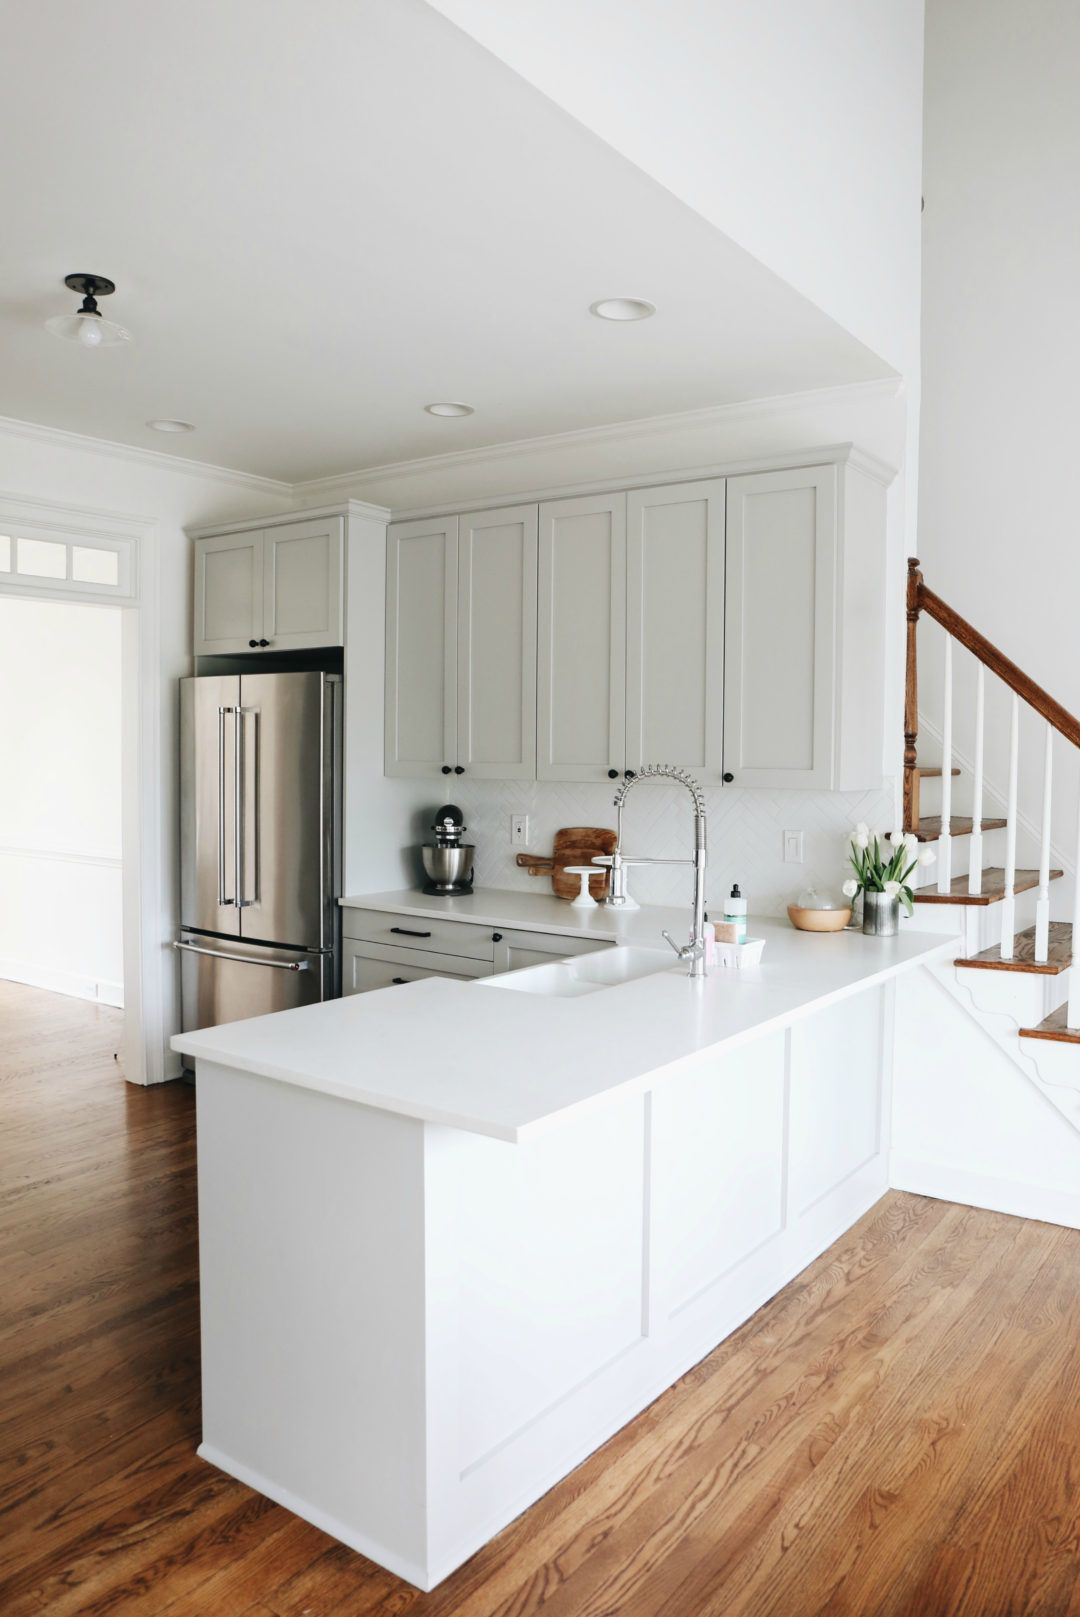 Our Kitchen Renovation Details   Kitchen remodel small ...